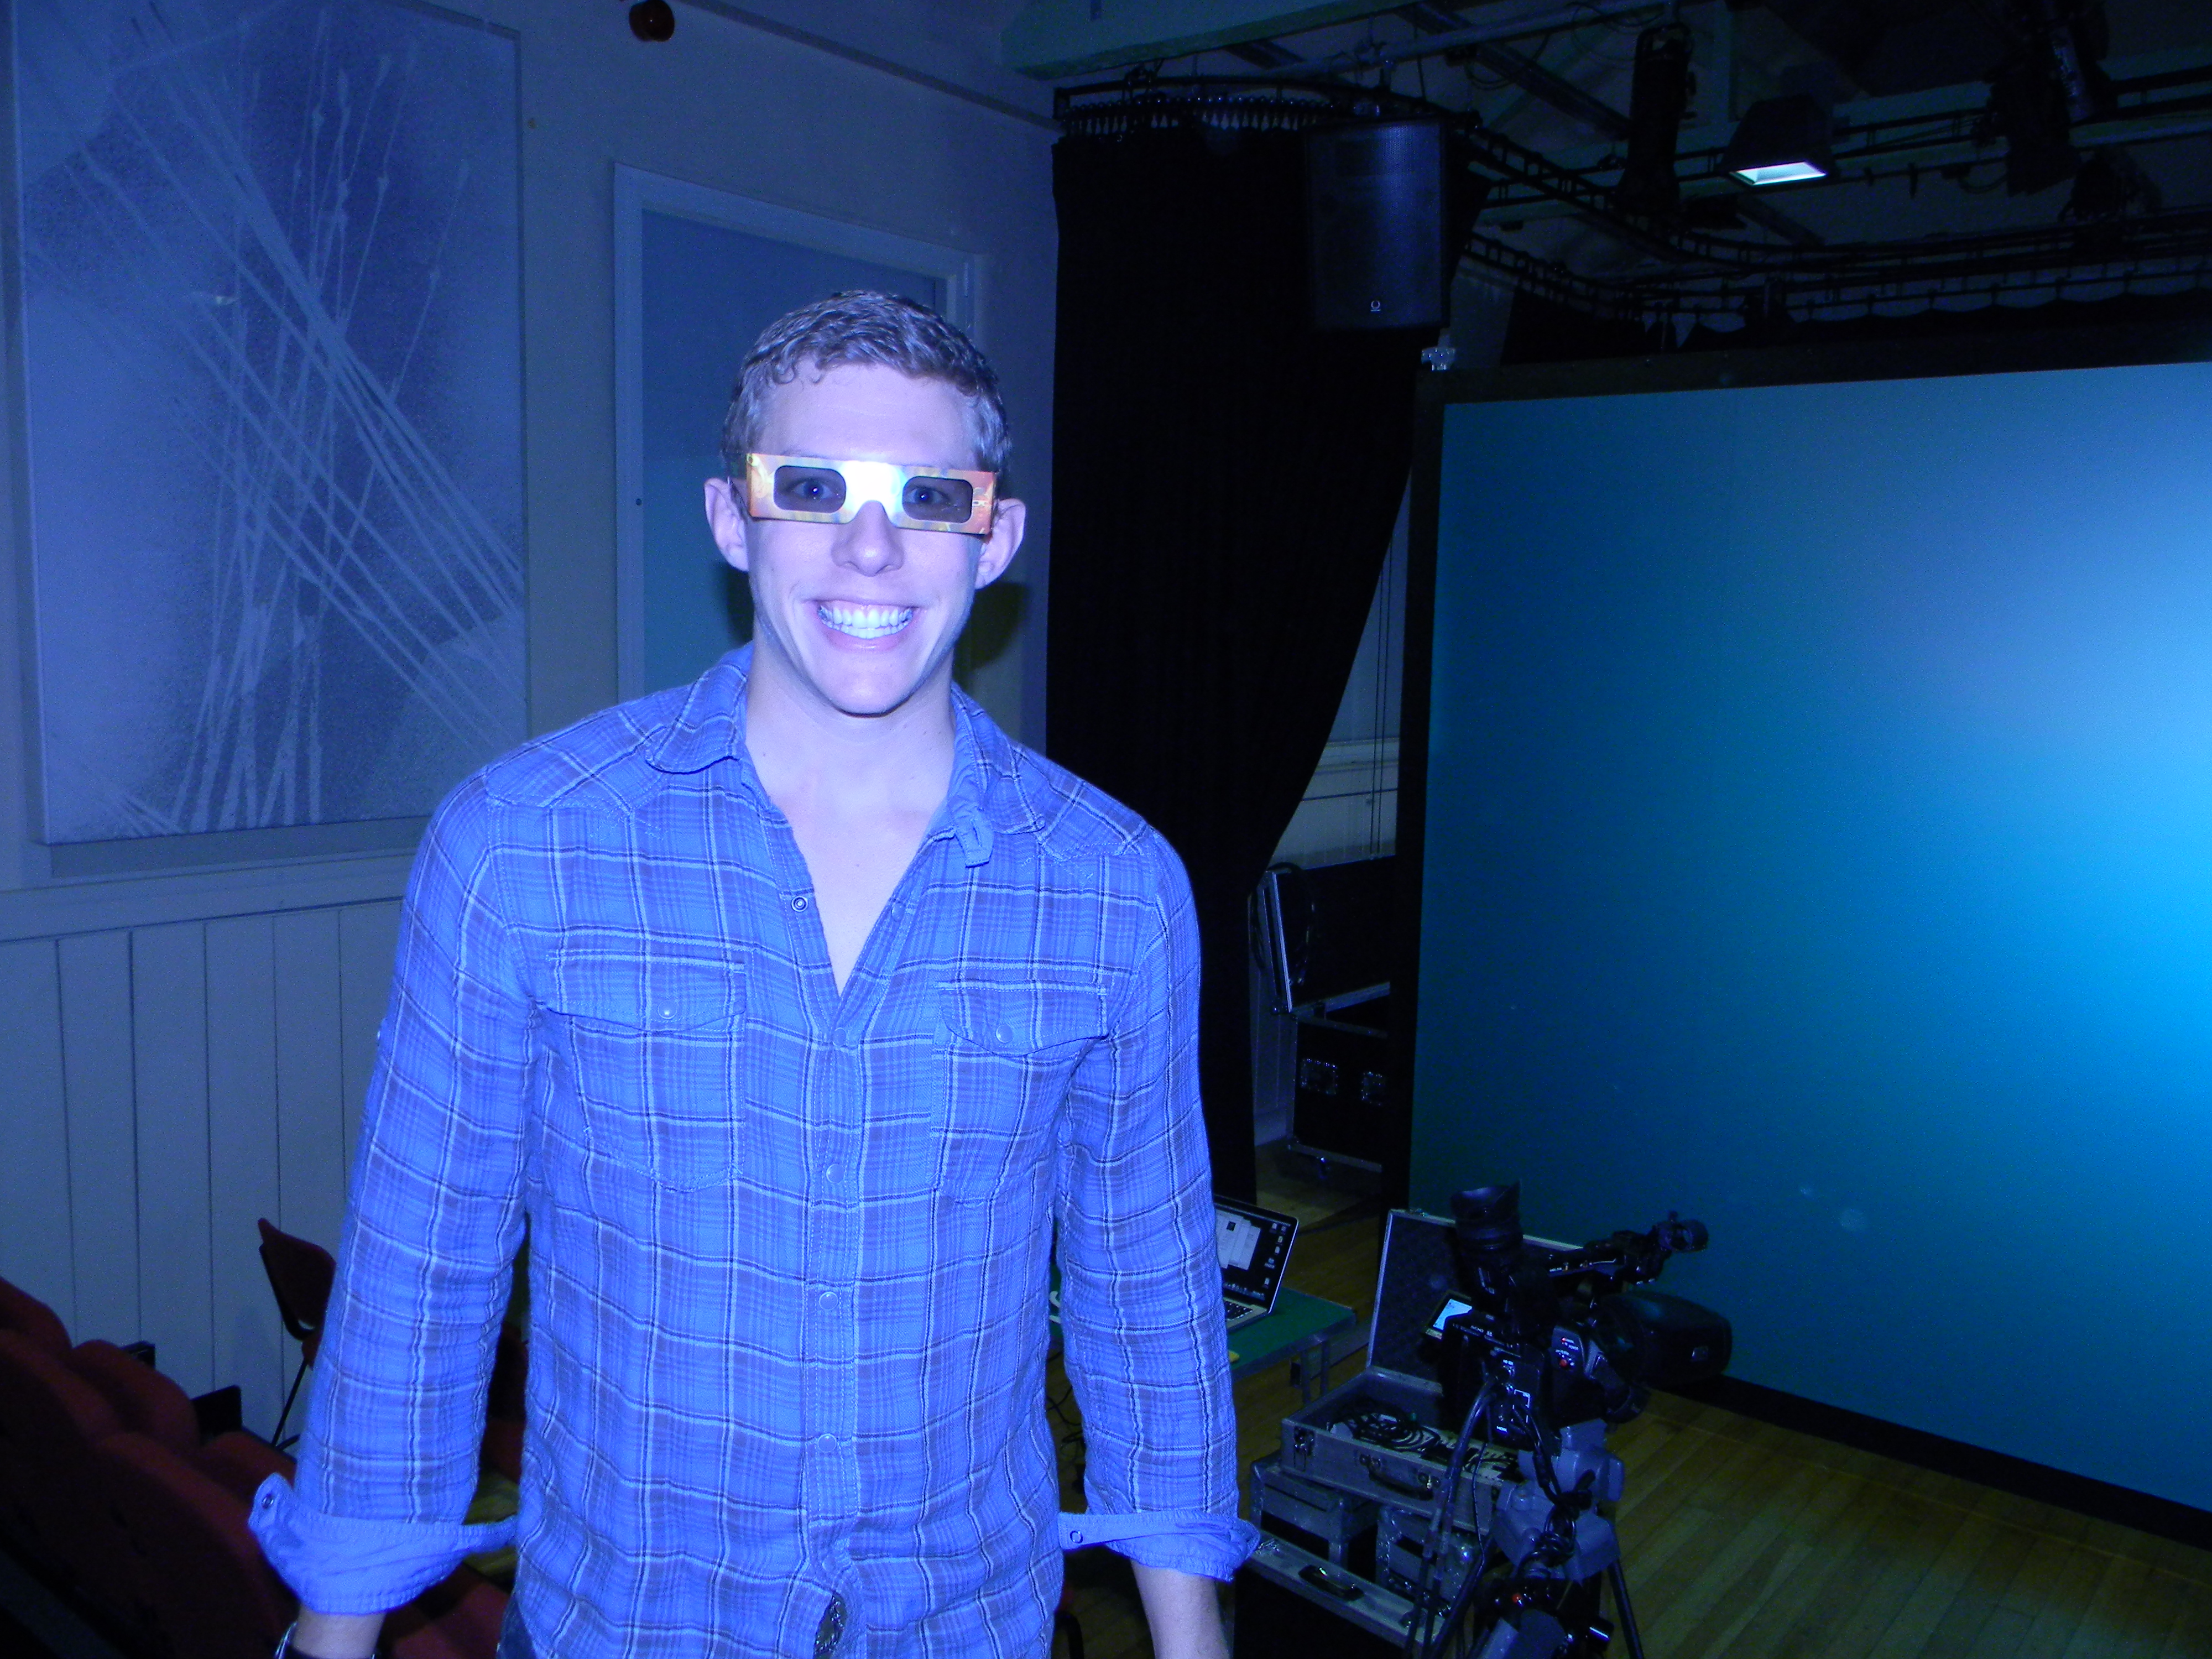 Rehearsing the new 3D show